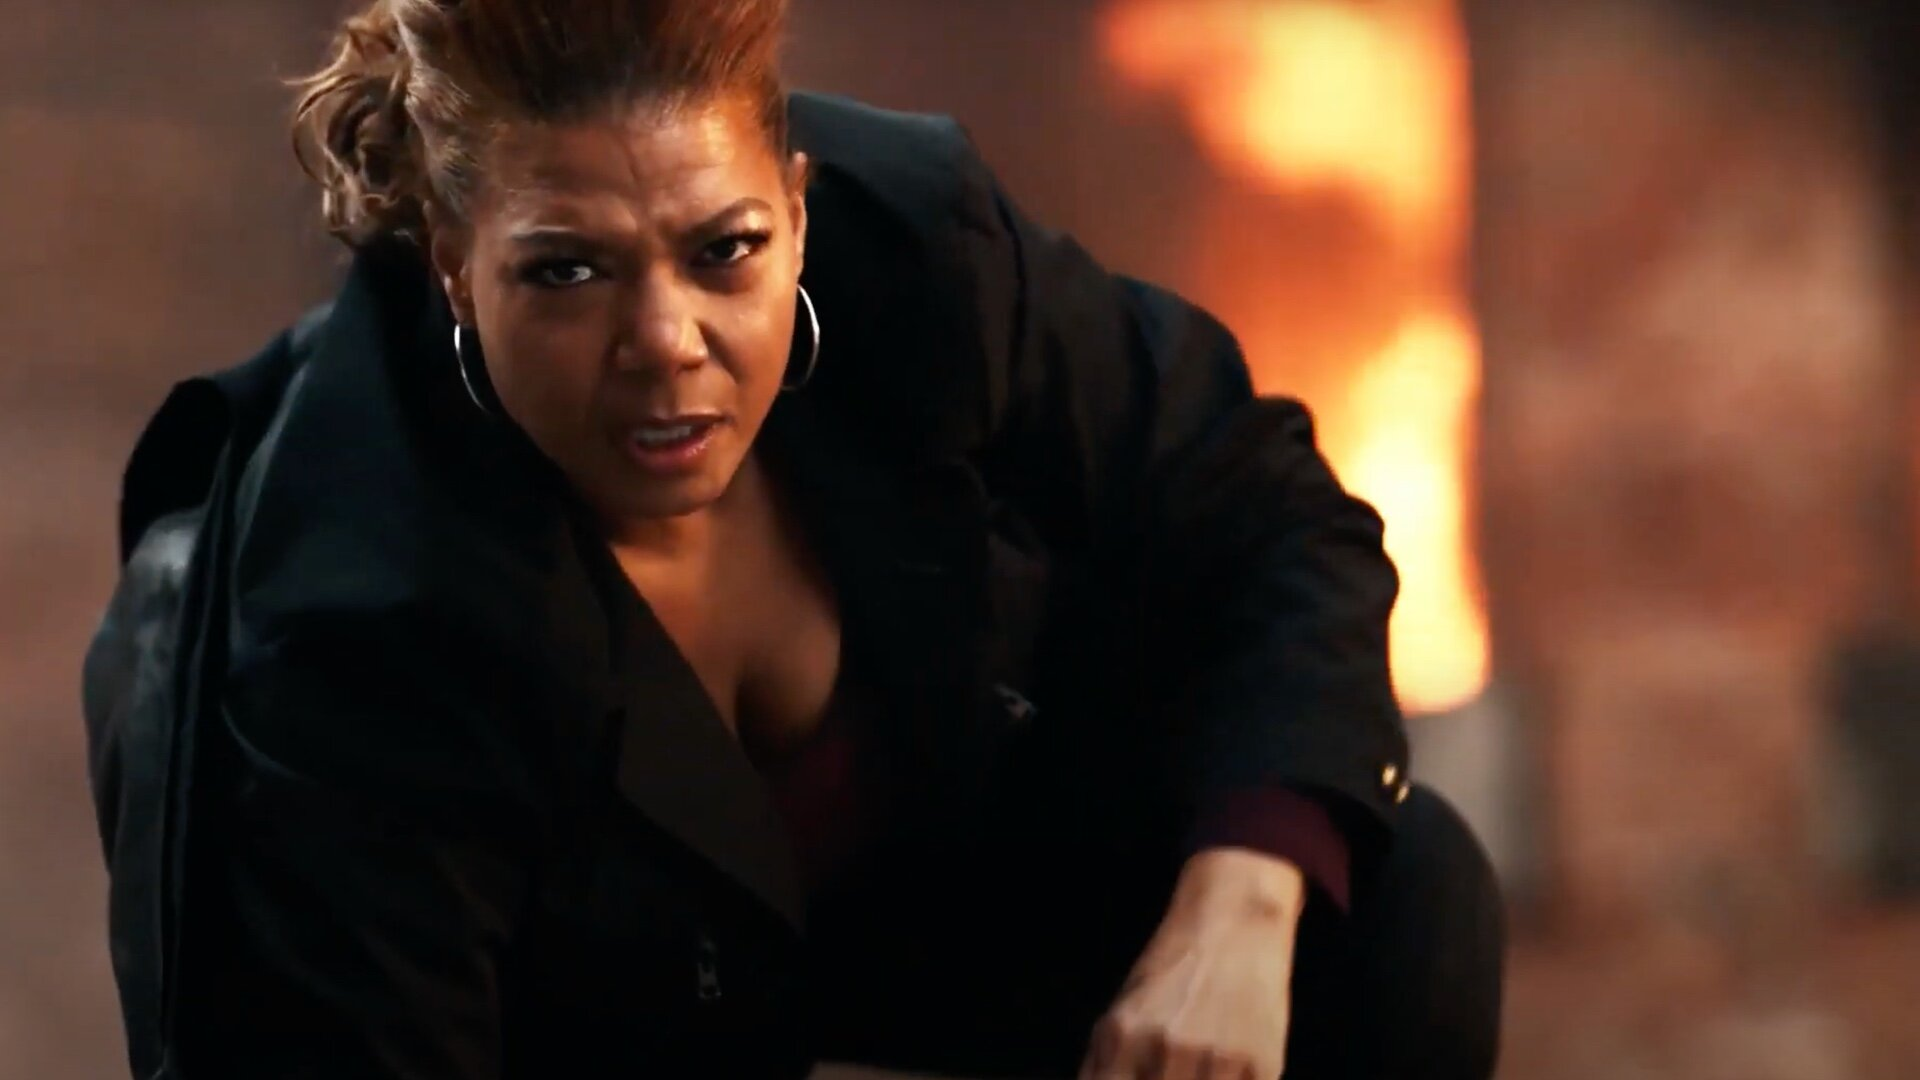 Queen Latifah Is Looking To Kick Some Ass In Teaser Trailer For The Equalizer Series Geektyrant